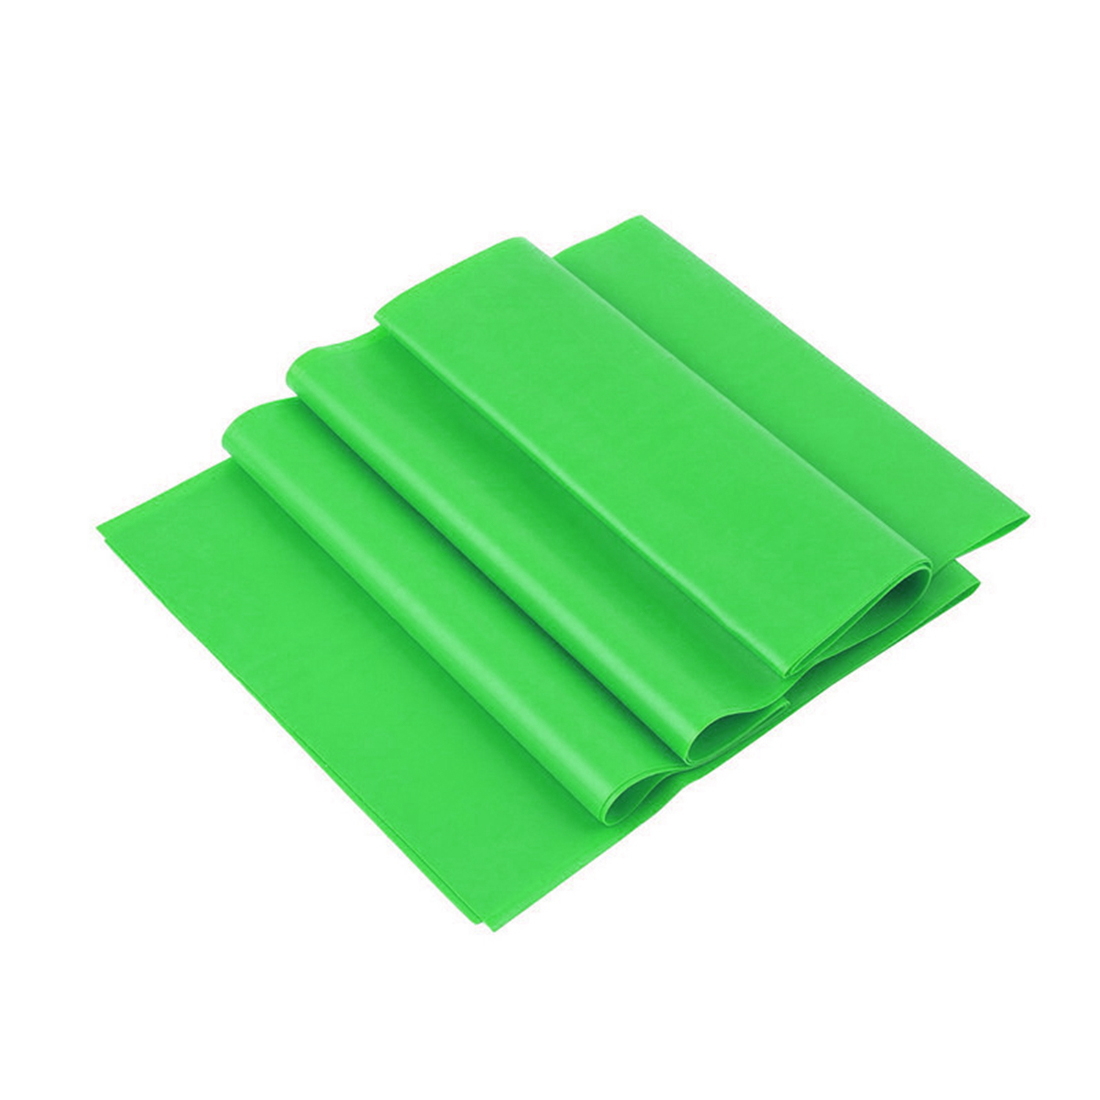 Exercise Rubber Bands Green: Super Sell Green 1.5m Yoga Pilates Rubber Stretch